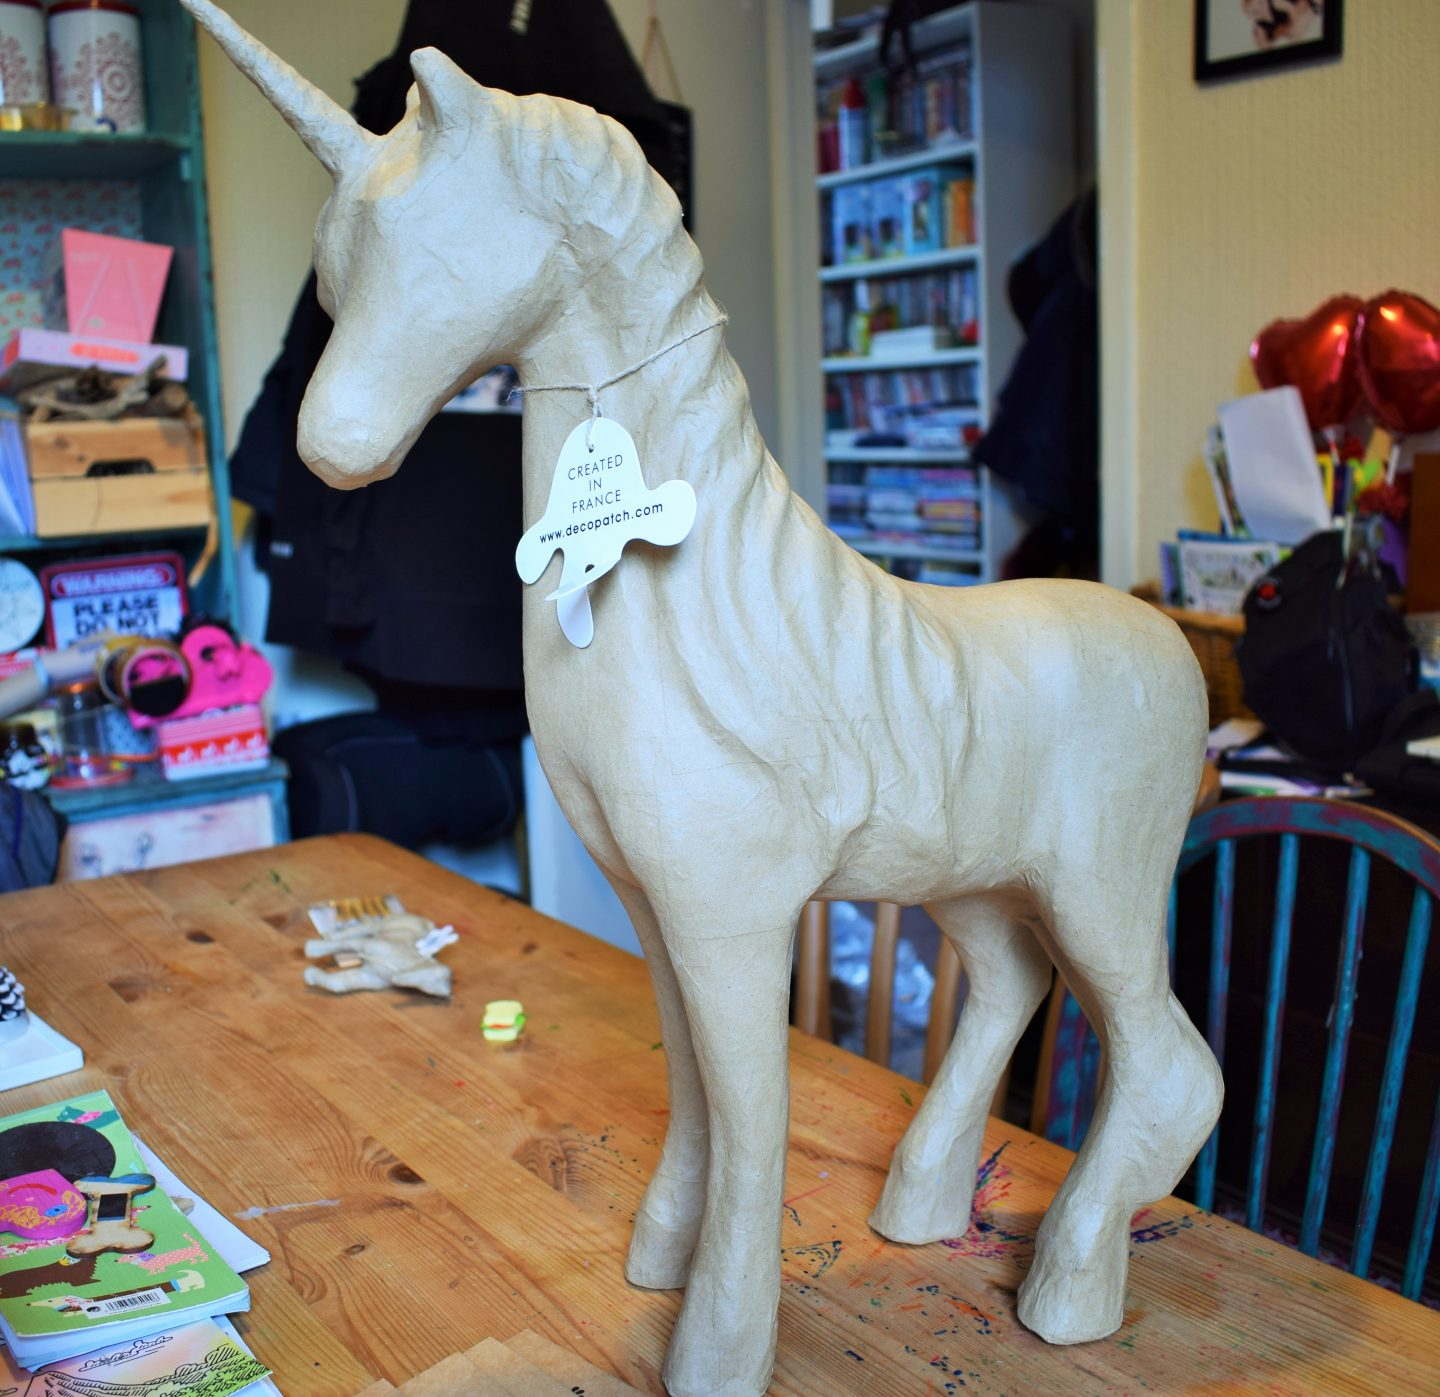 Decoupage Unicorn before any work has commenced